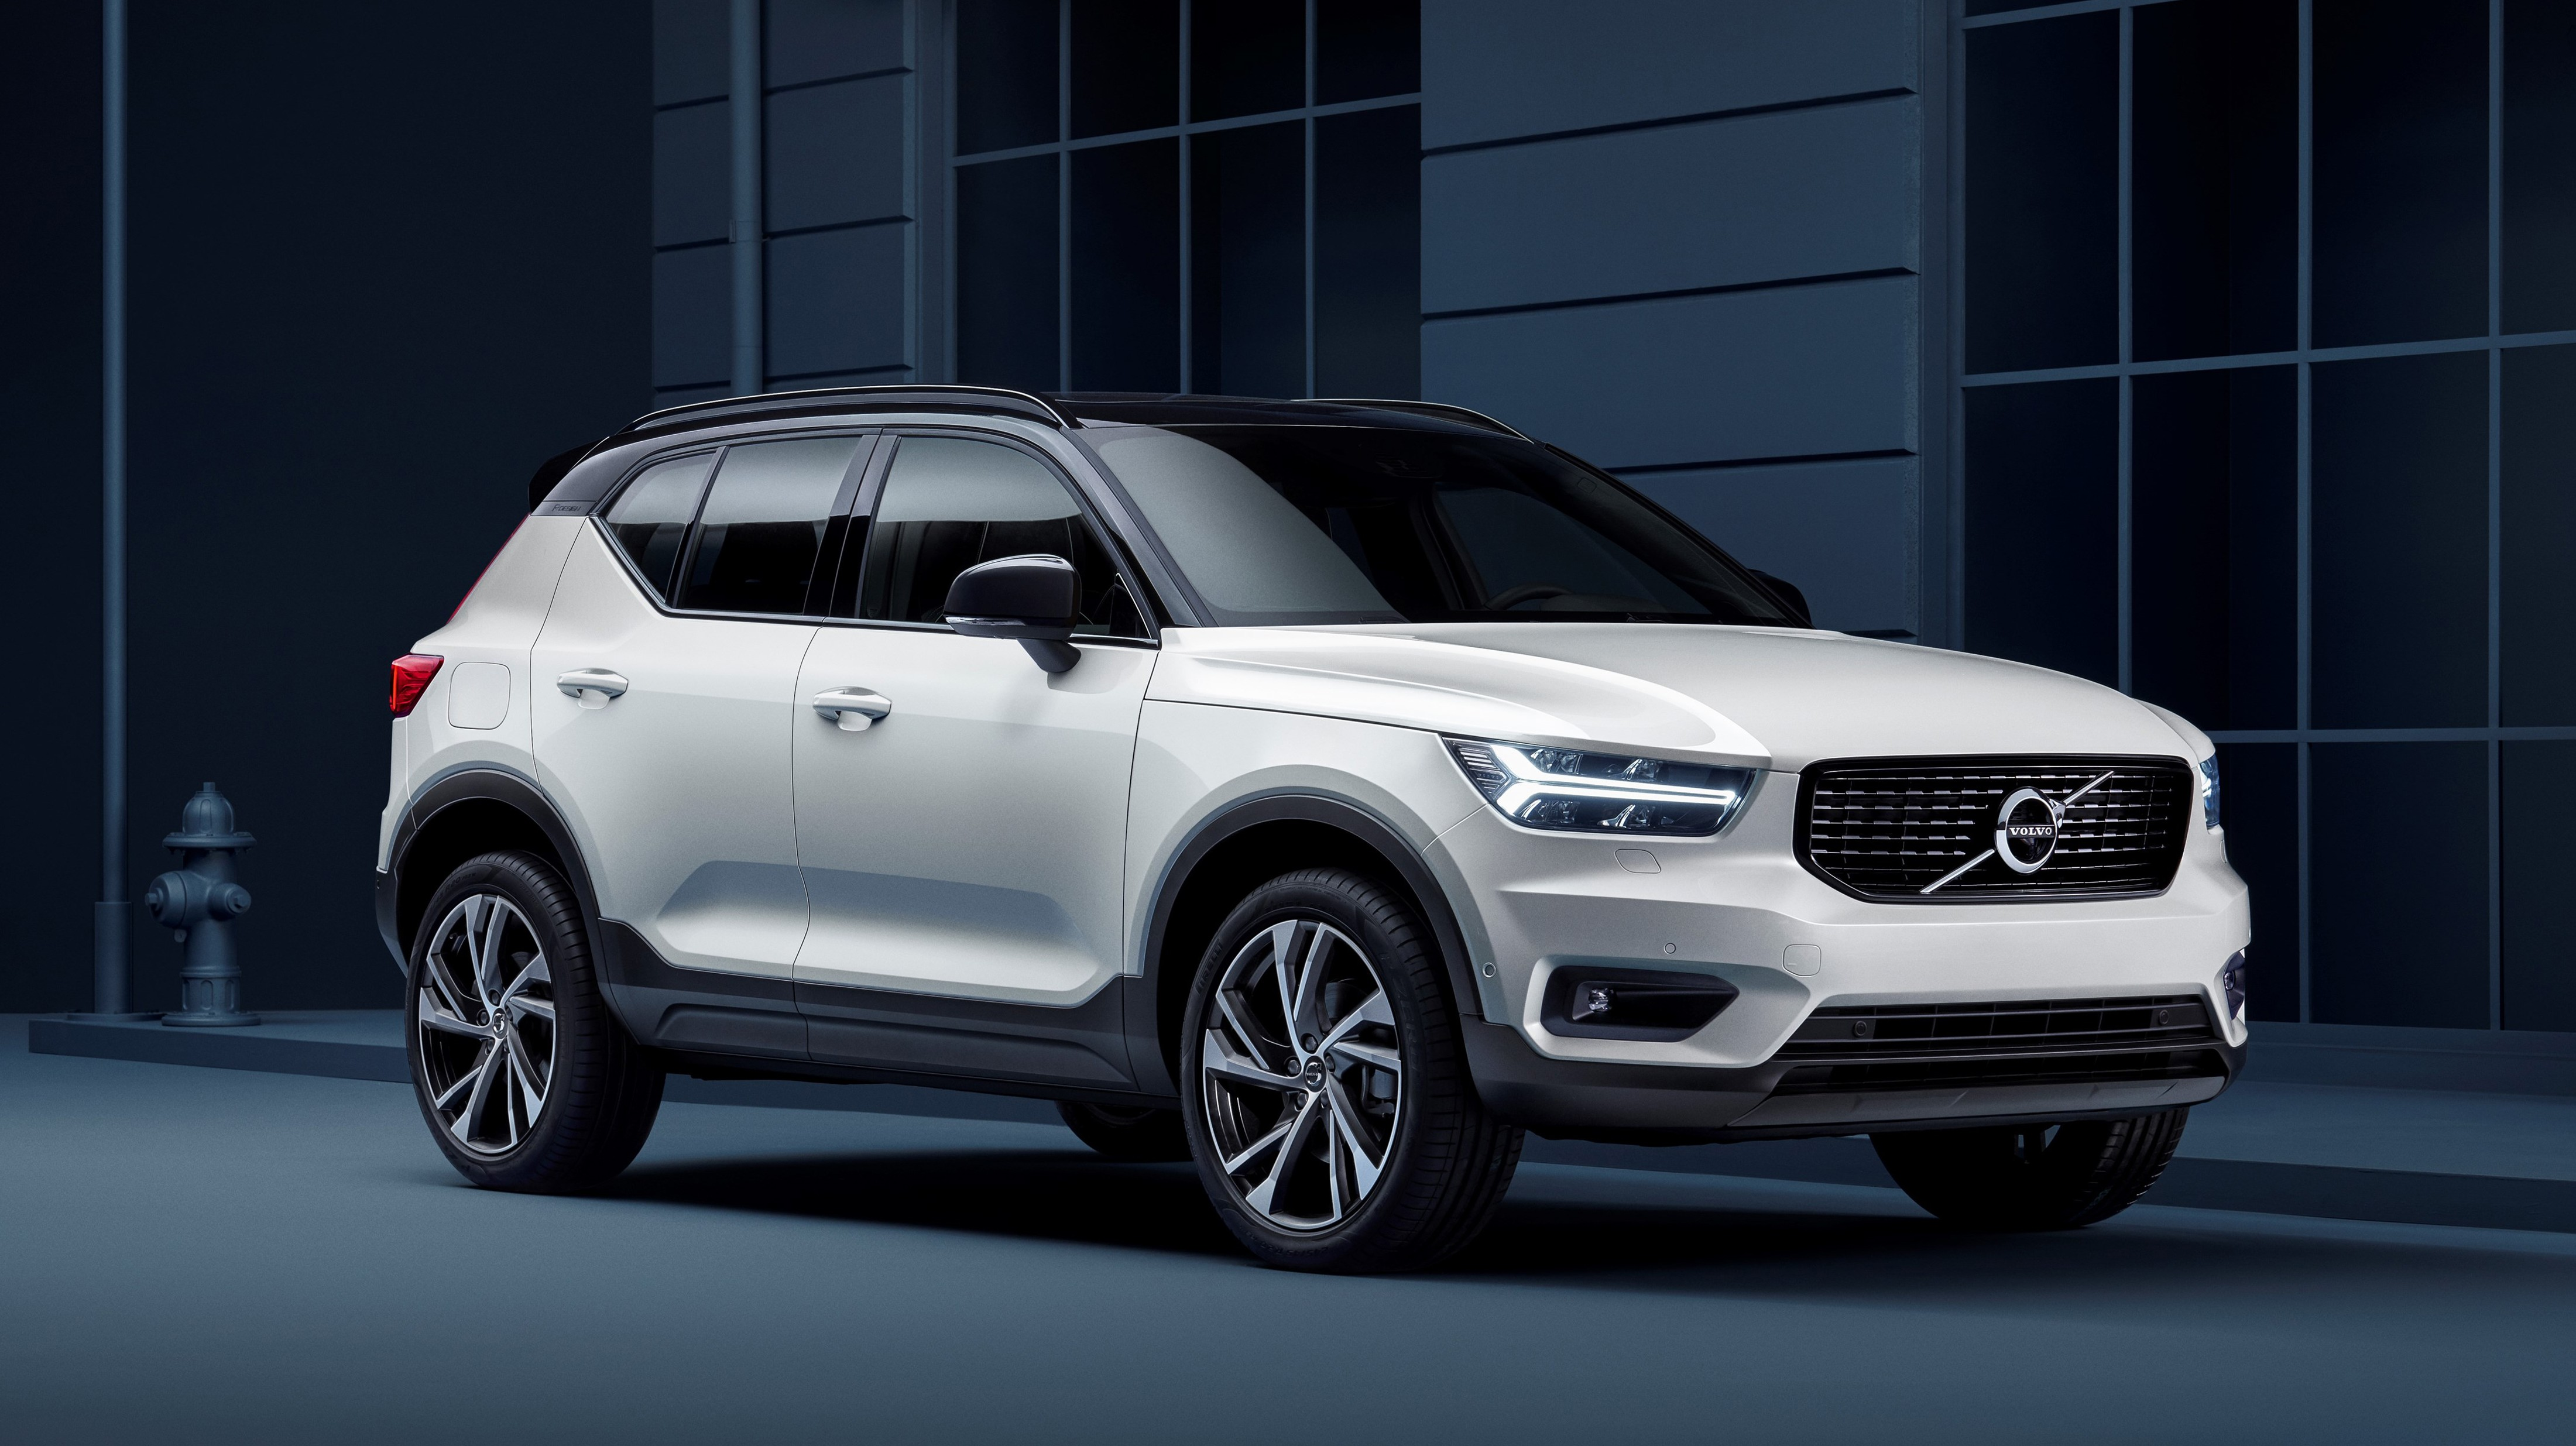 2020 xc40 volvo white color front